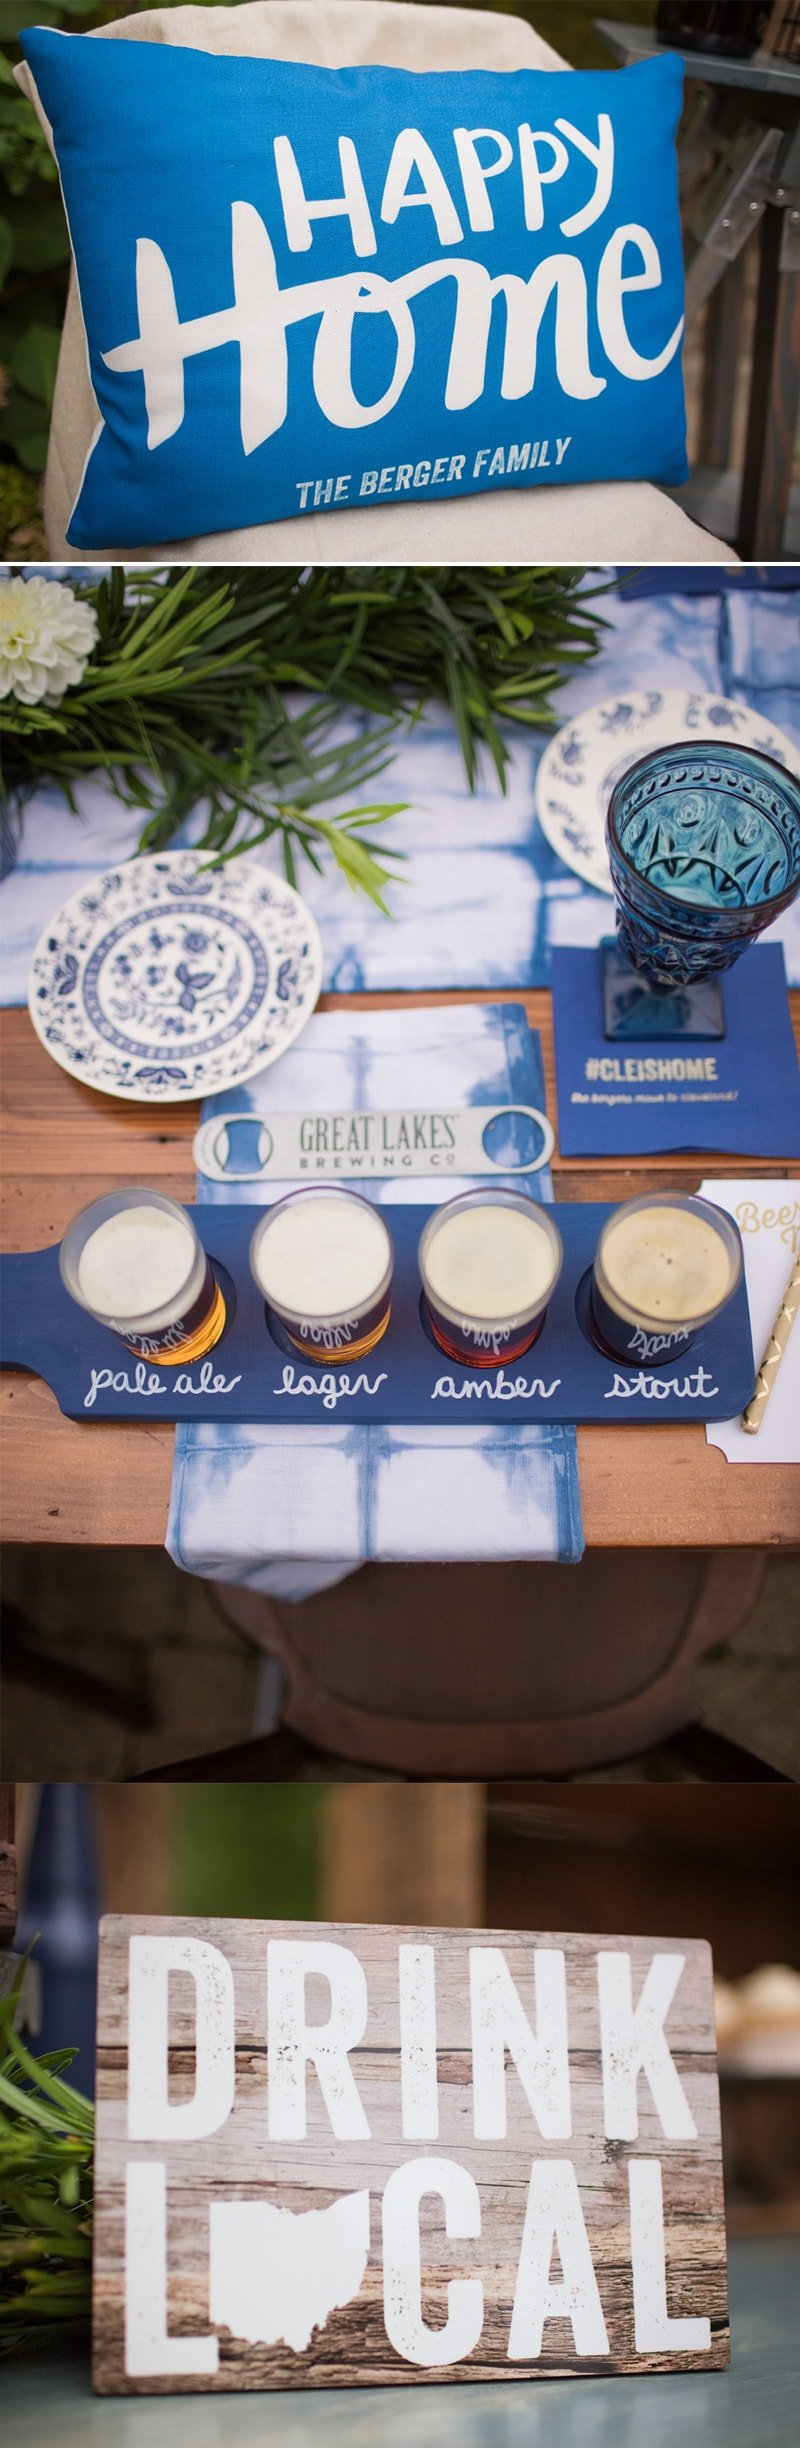 Beer Tasting Housewarming Party